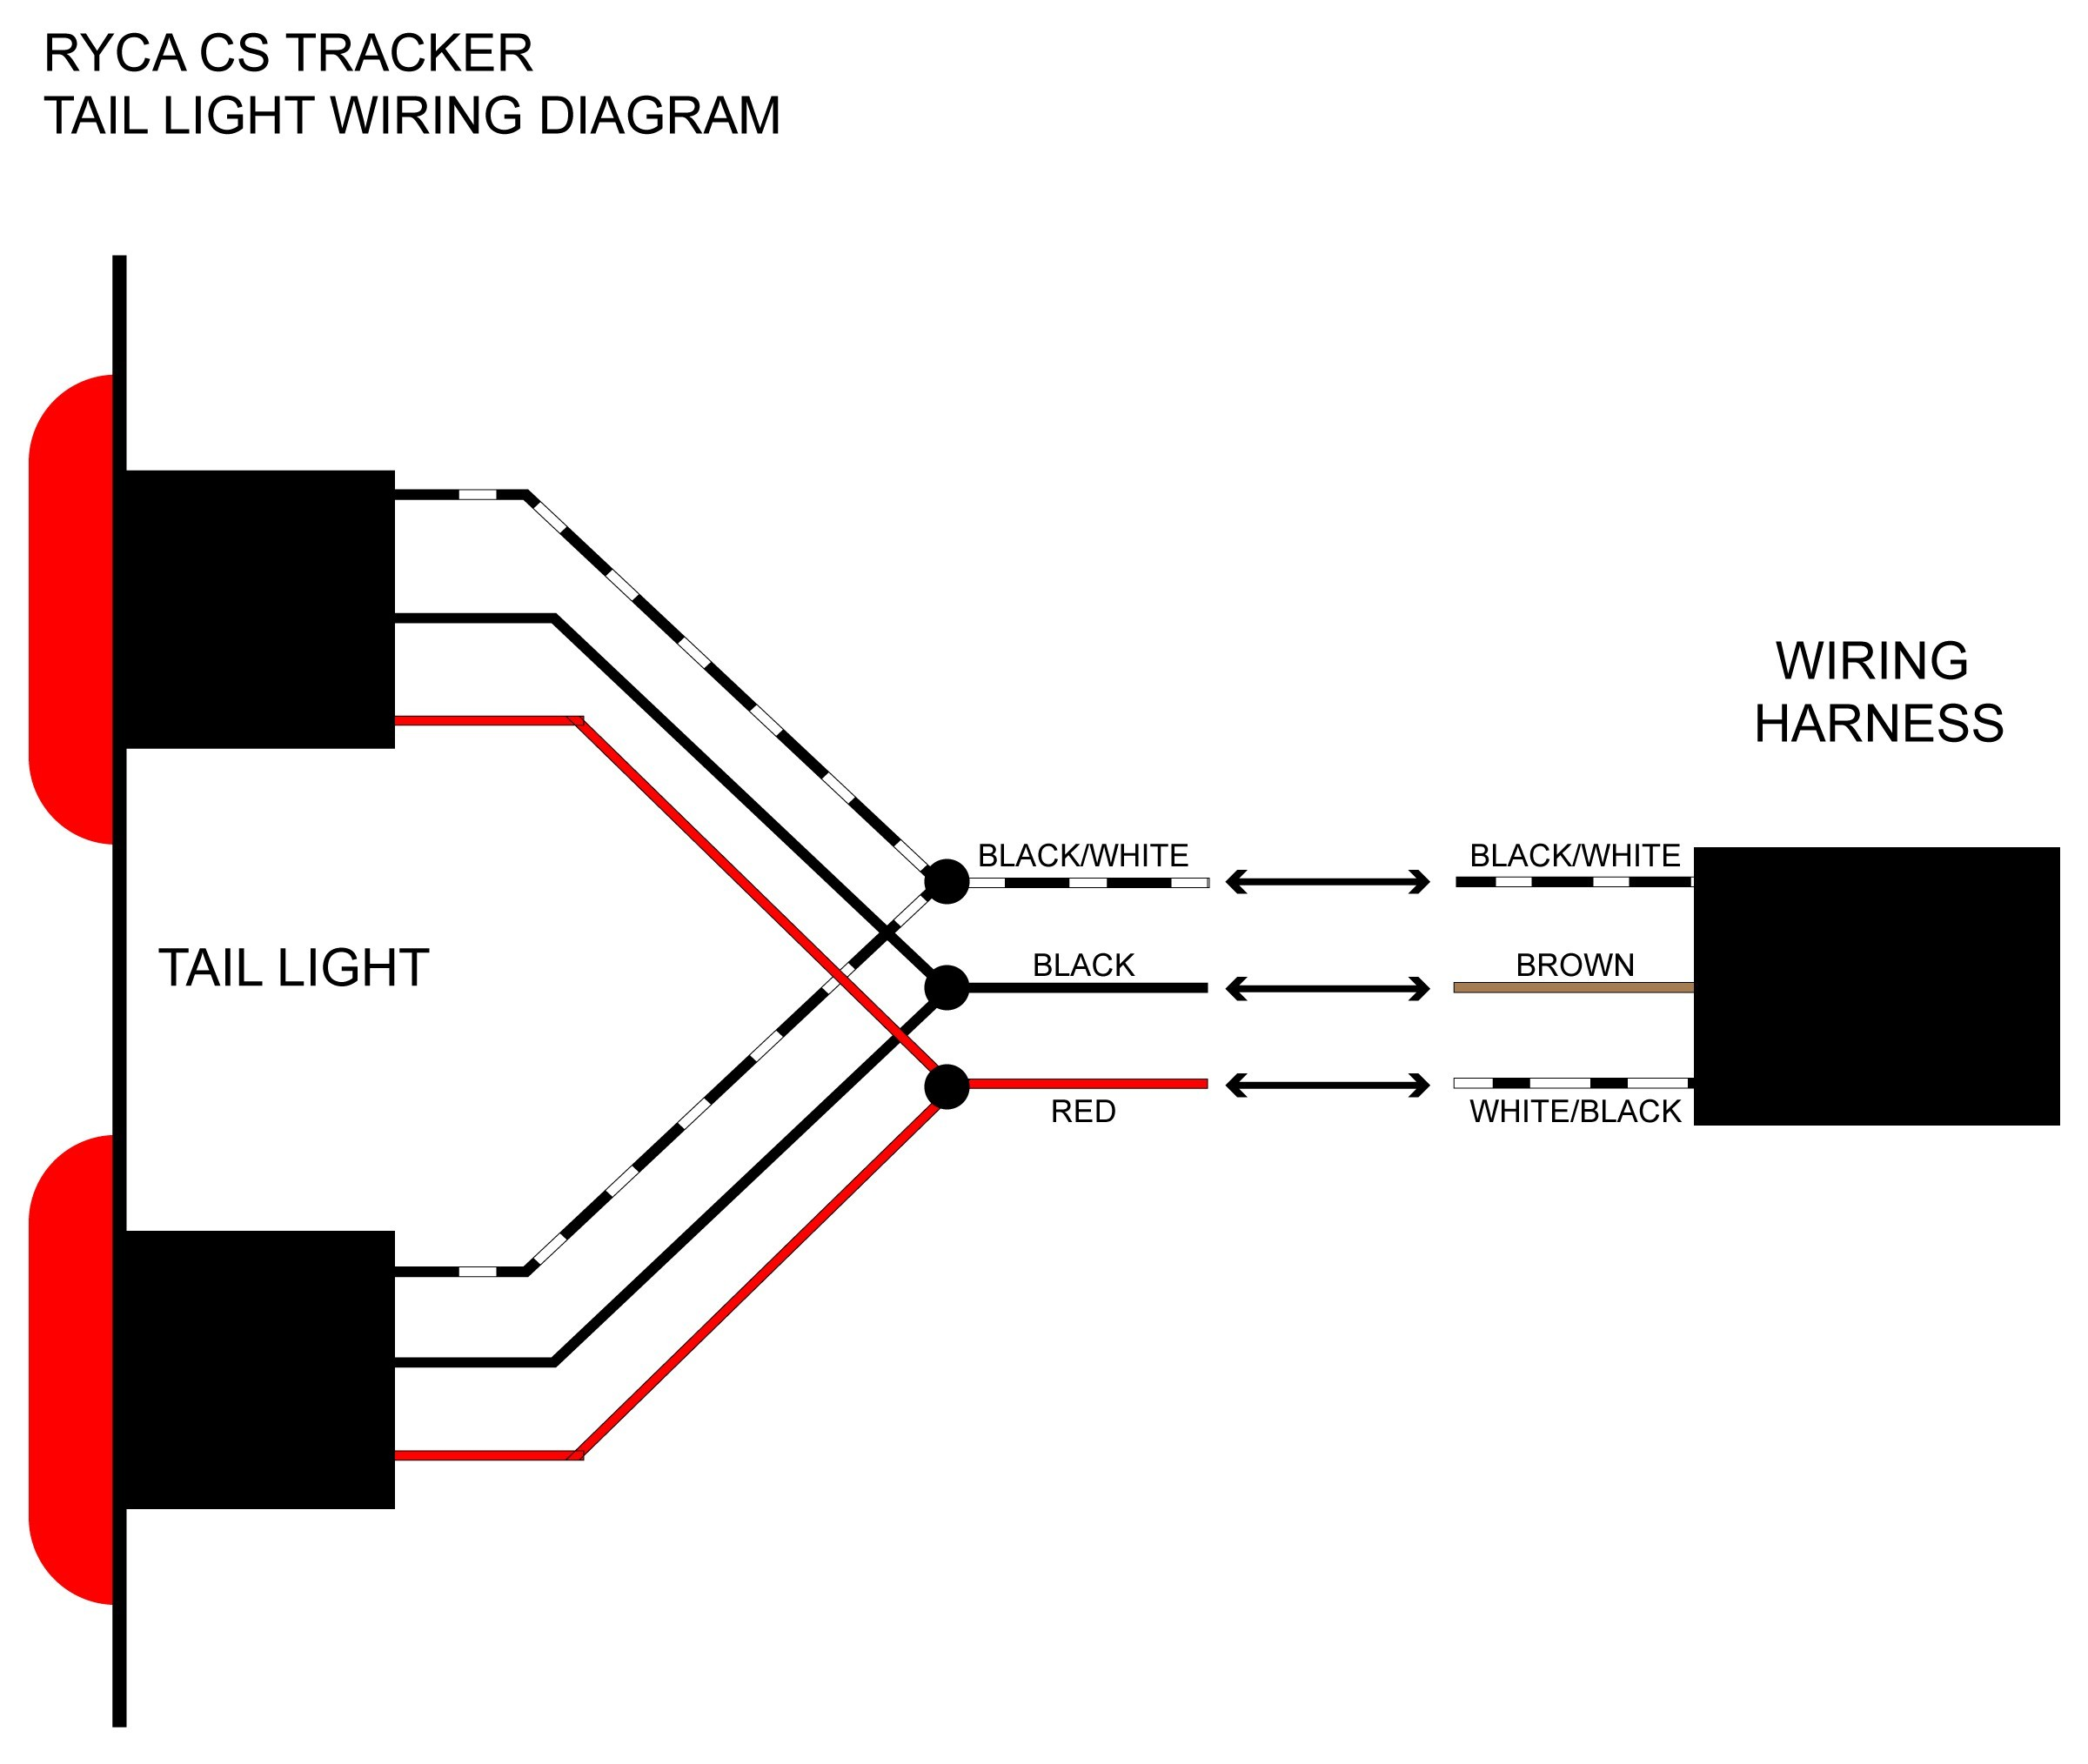 dakotum tail light wiring diagram